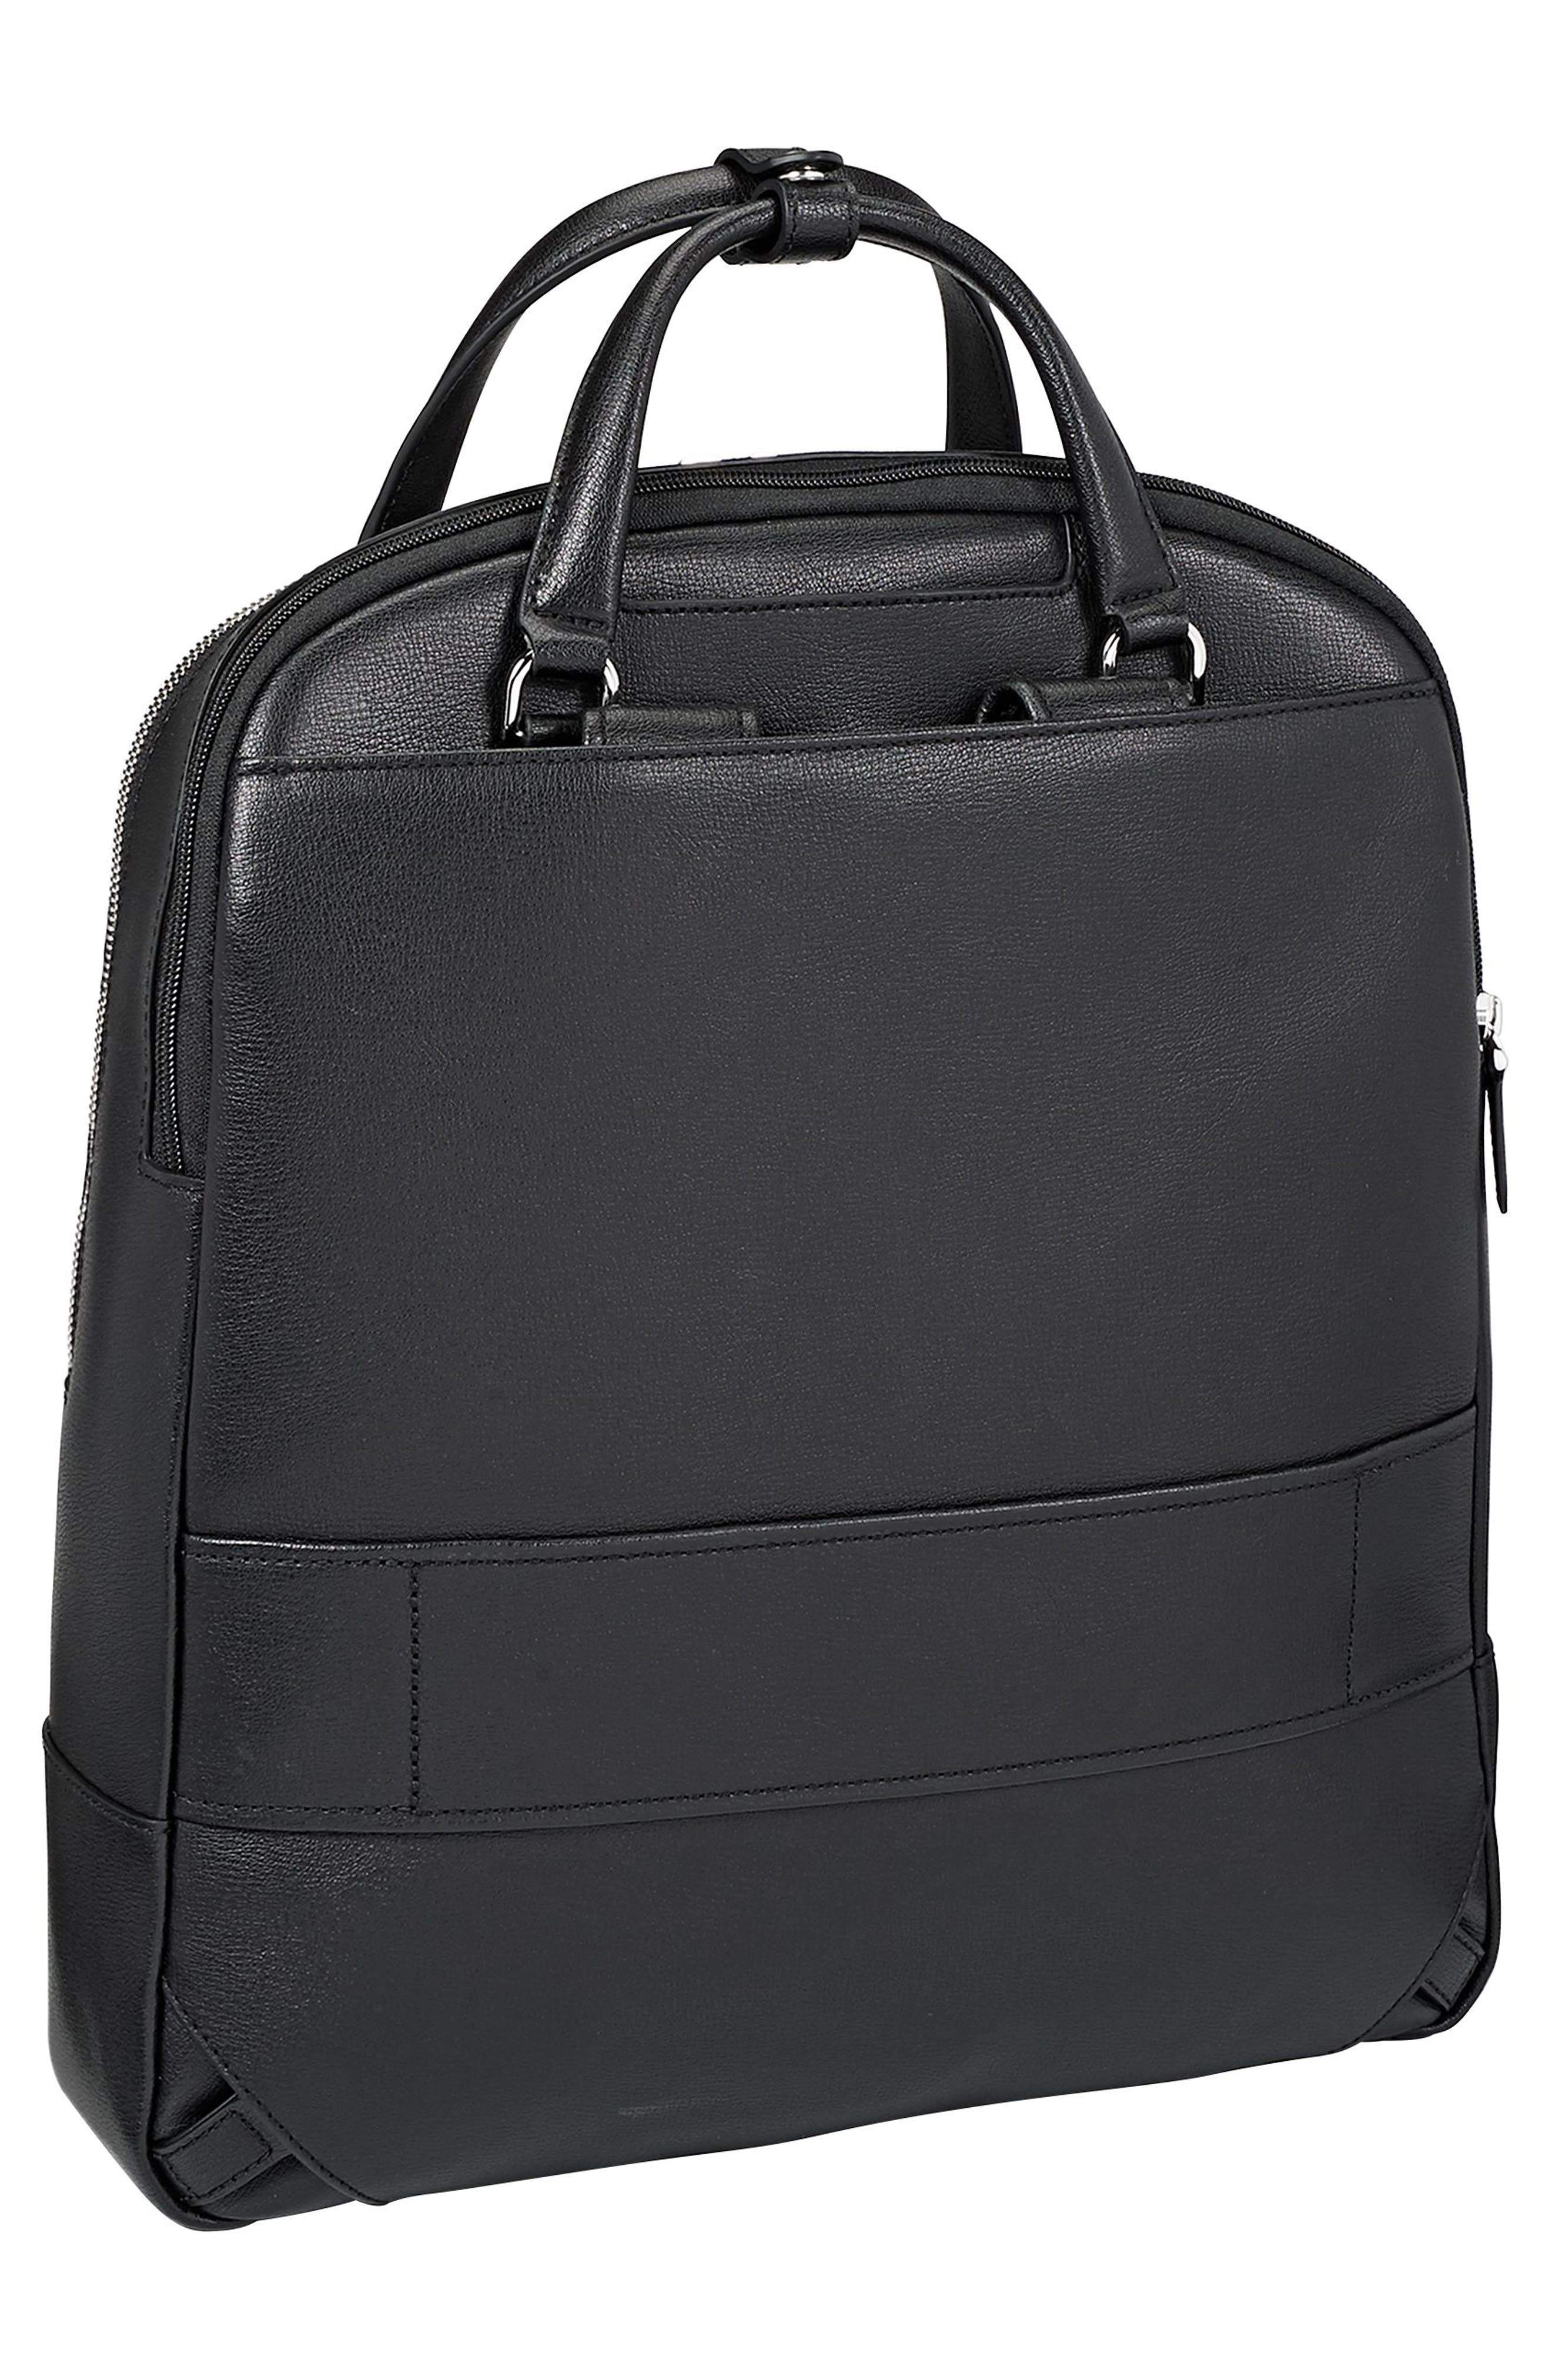 Stanton Orion Leather Backpack,                             Alternate thumbnail 2, color,                             001